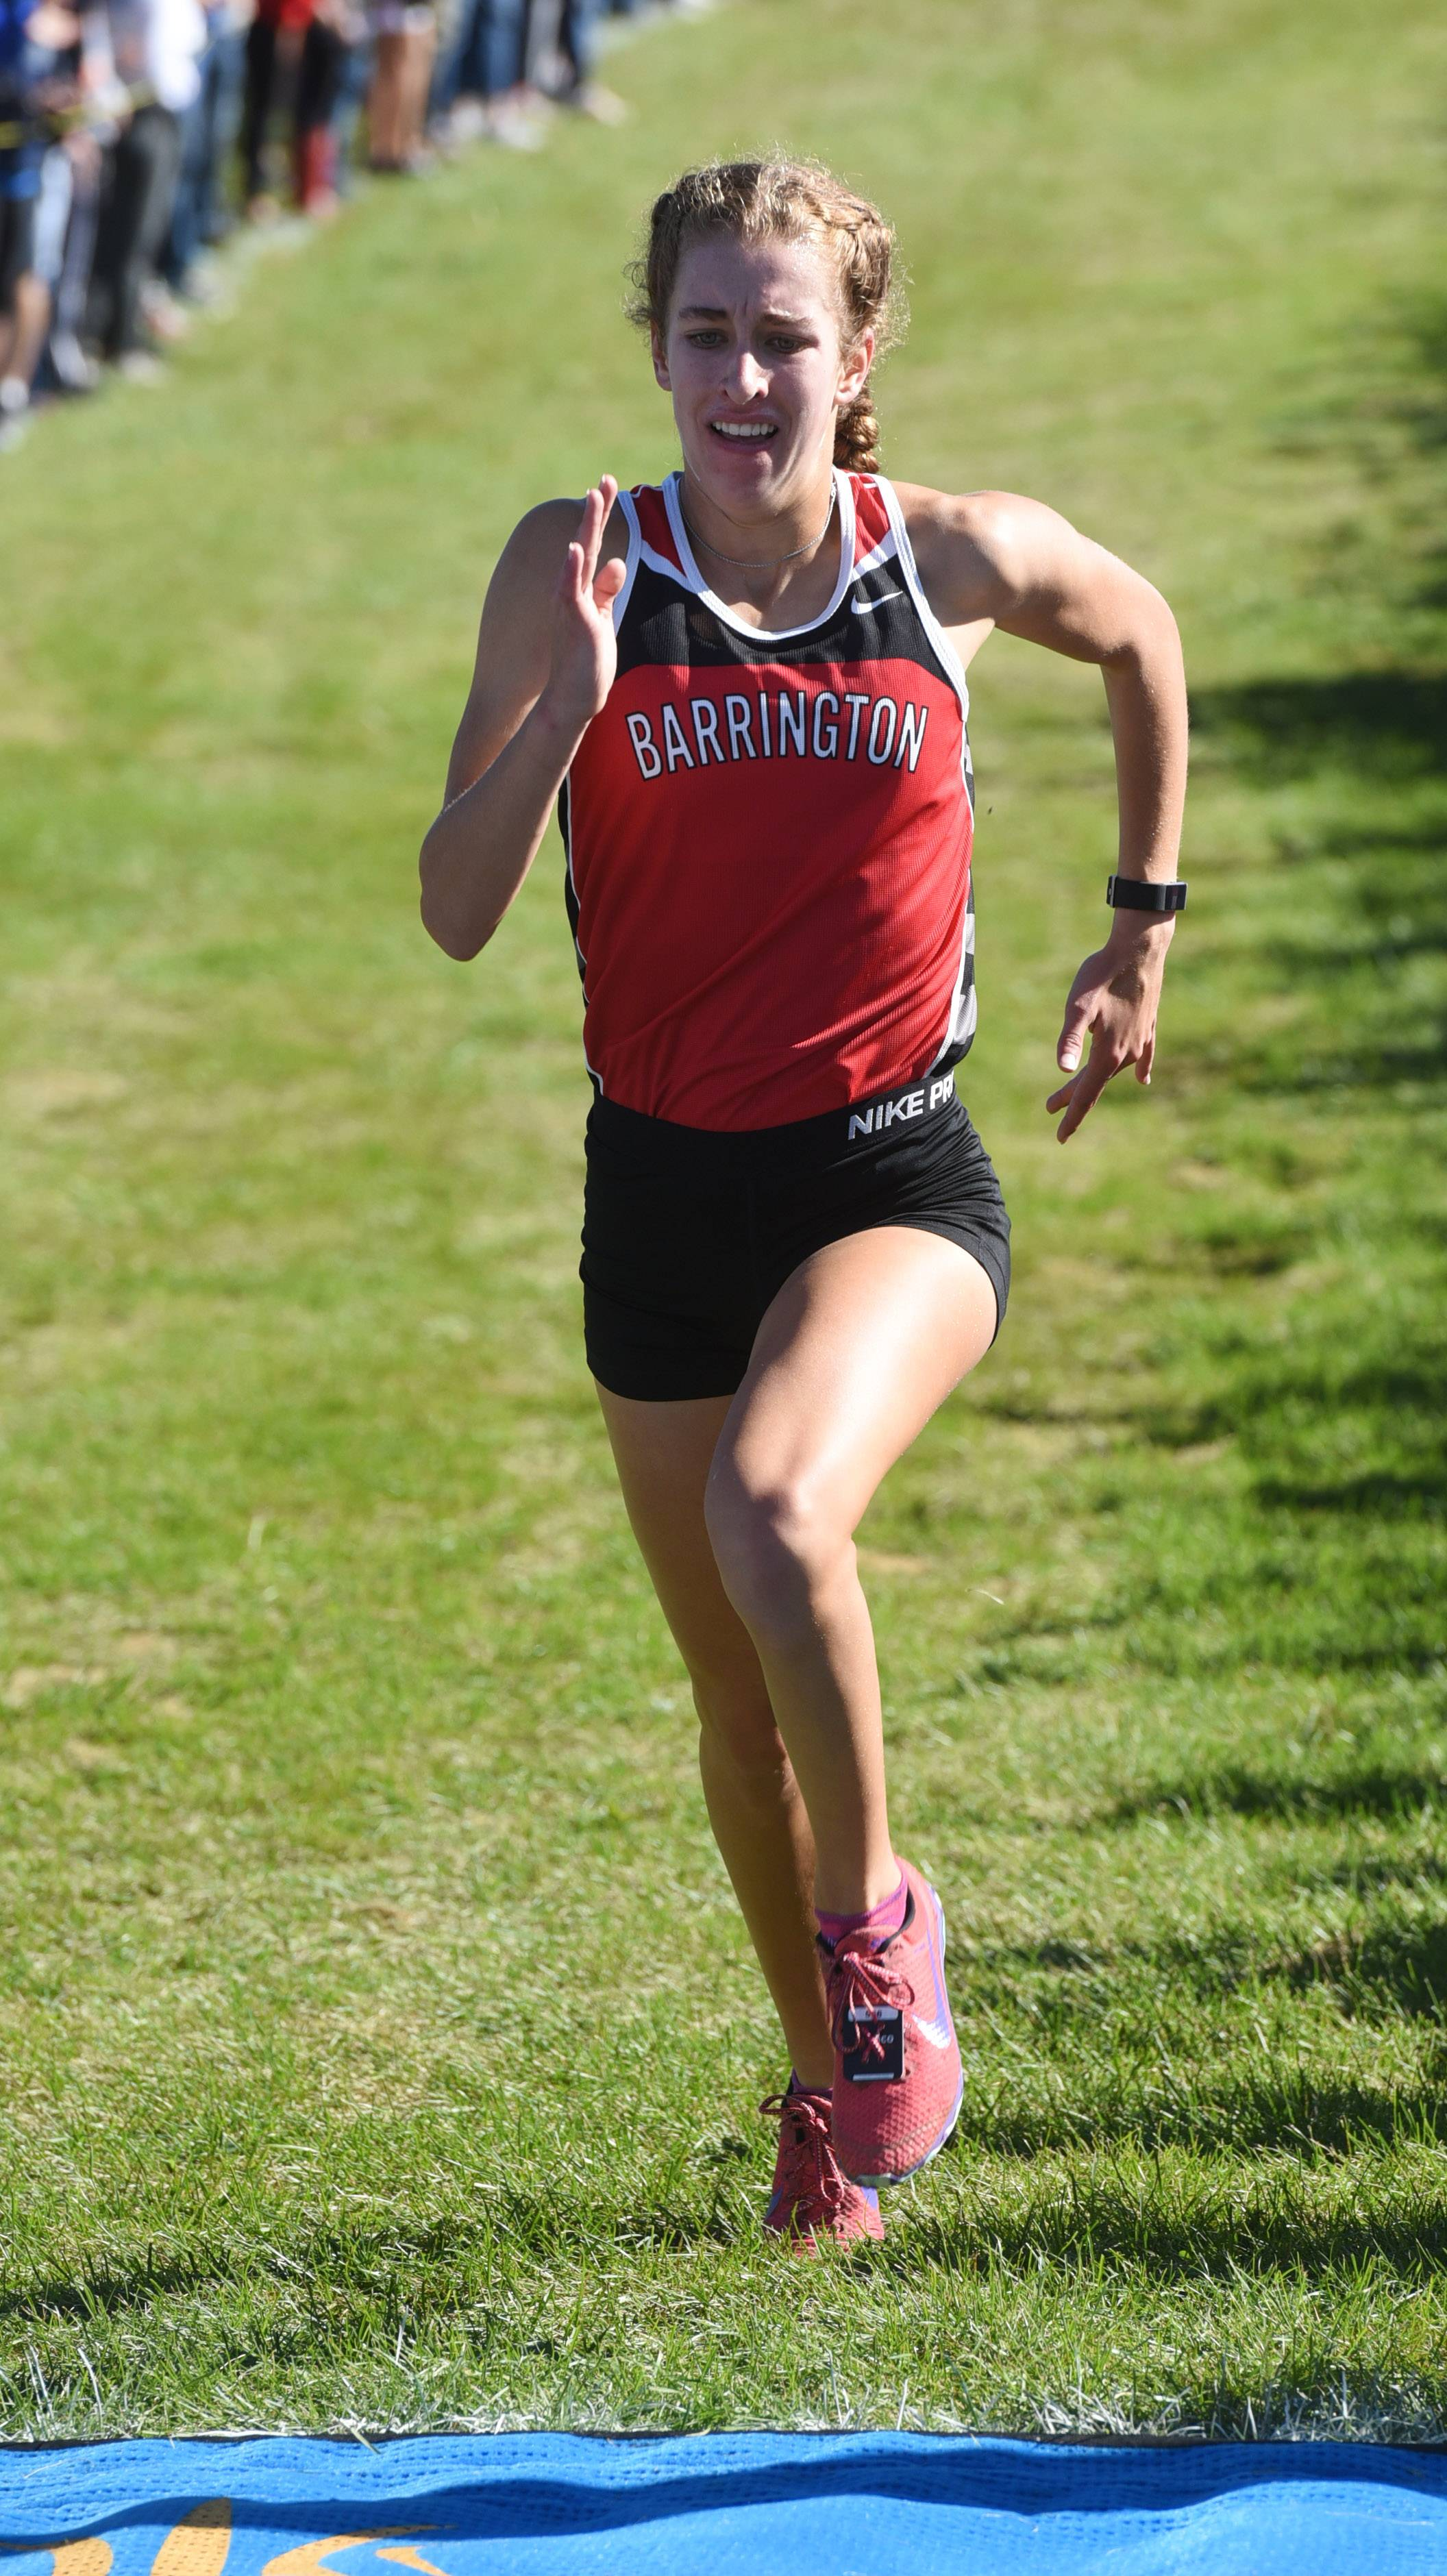 Girls cross country: Barrington's Fitzpatrick champ at Palatine